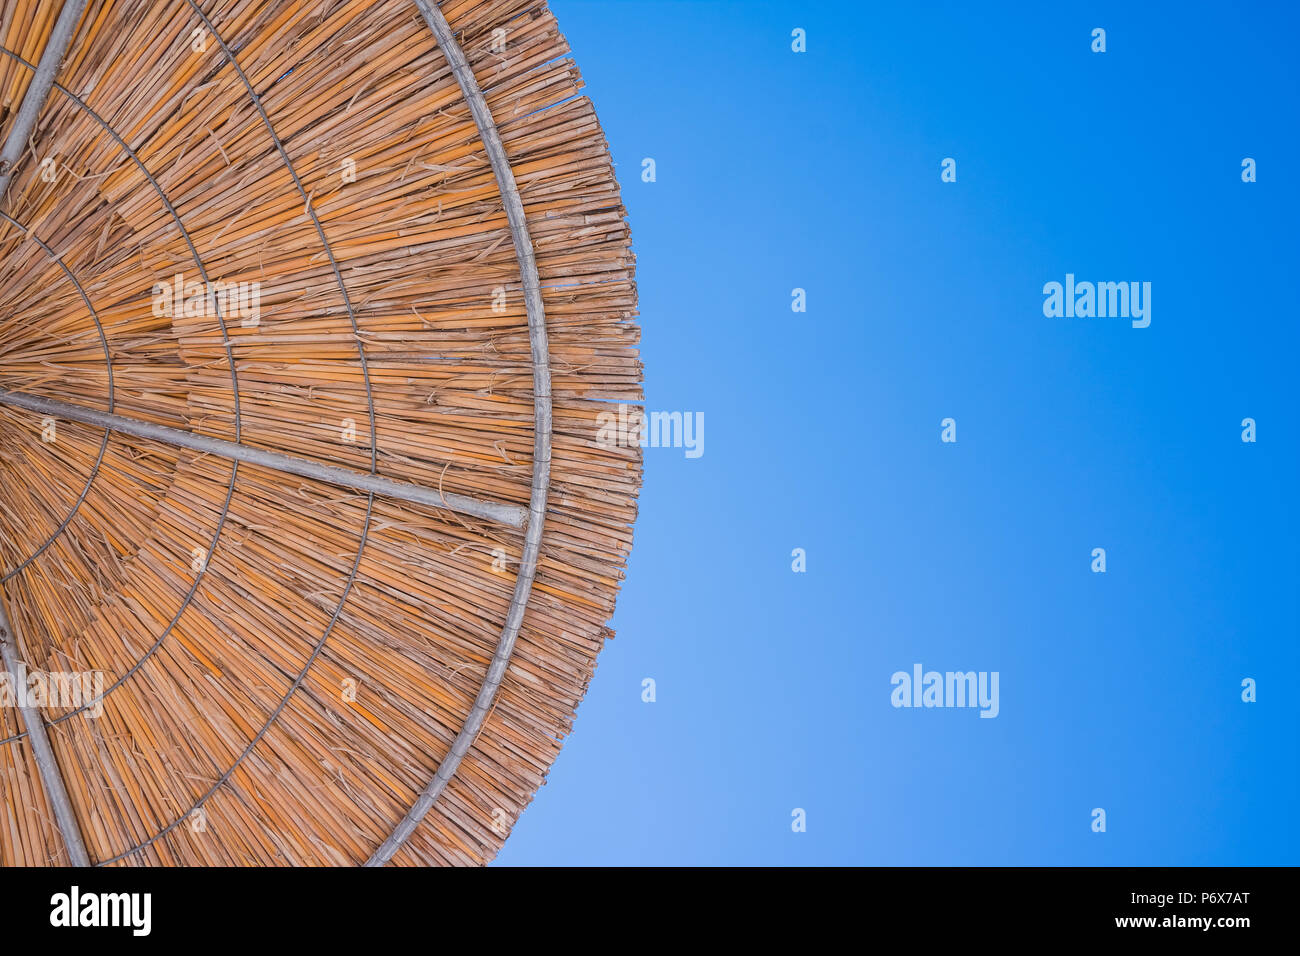 Straw Roof Of Sun Umbrella Against The Blue Sky Vacation Topic Summer Beach Background For An Inscription Texture Of Beautiful Straw Natural Sun Umbrellas Made From Hay In A Tropical Desert Resort Stock Photo